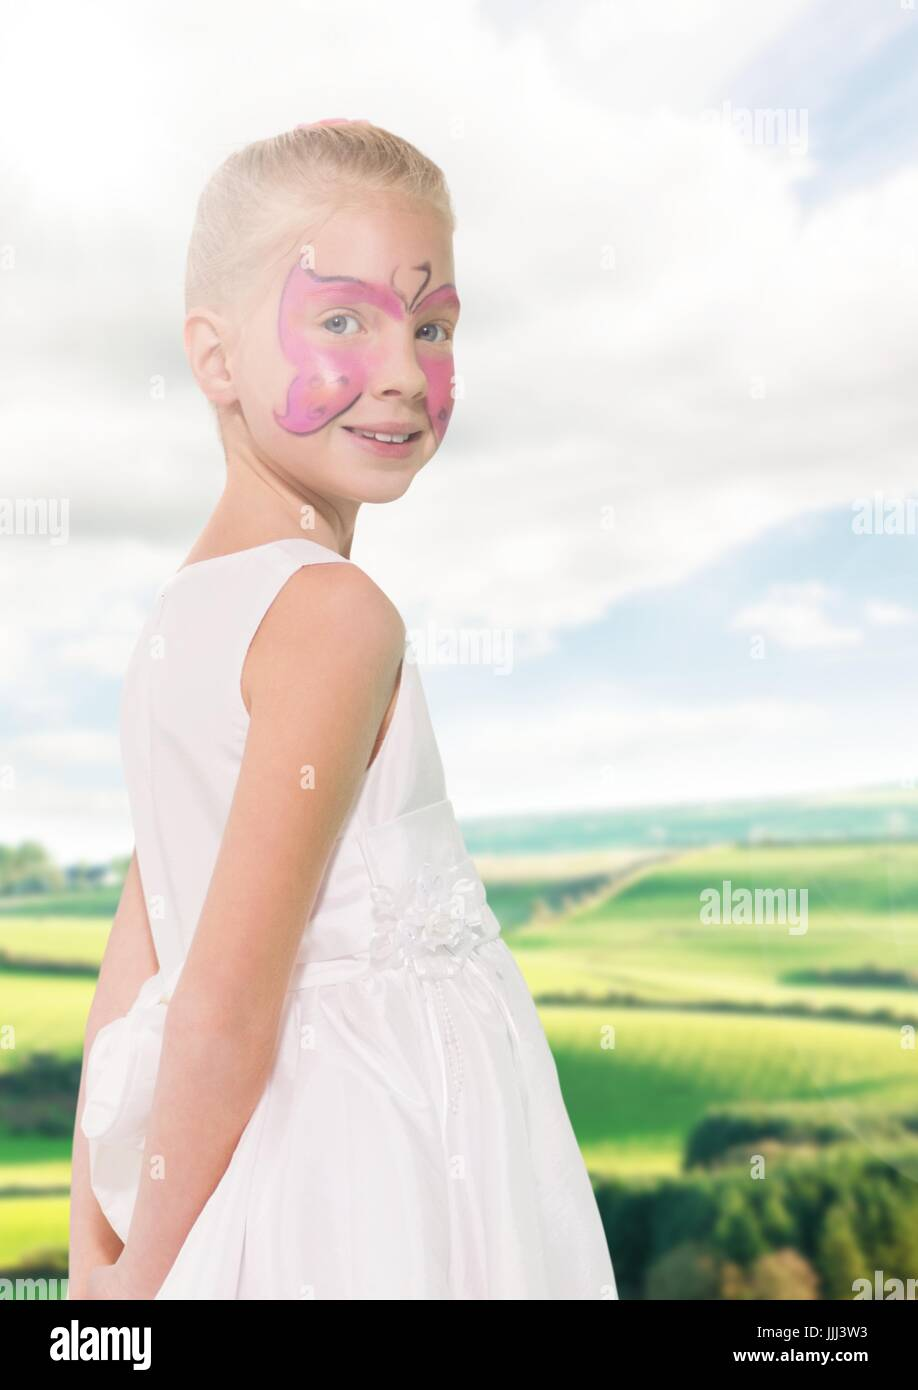 Girl in pink facepaint against fields with flare - Stock Image